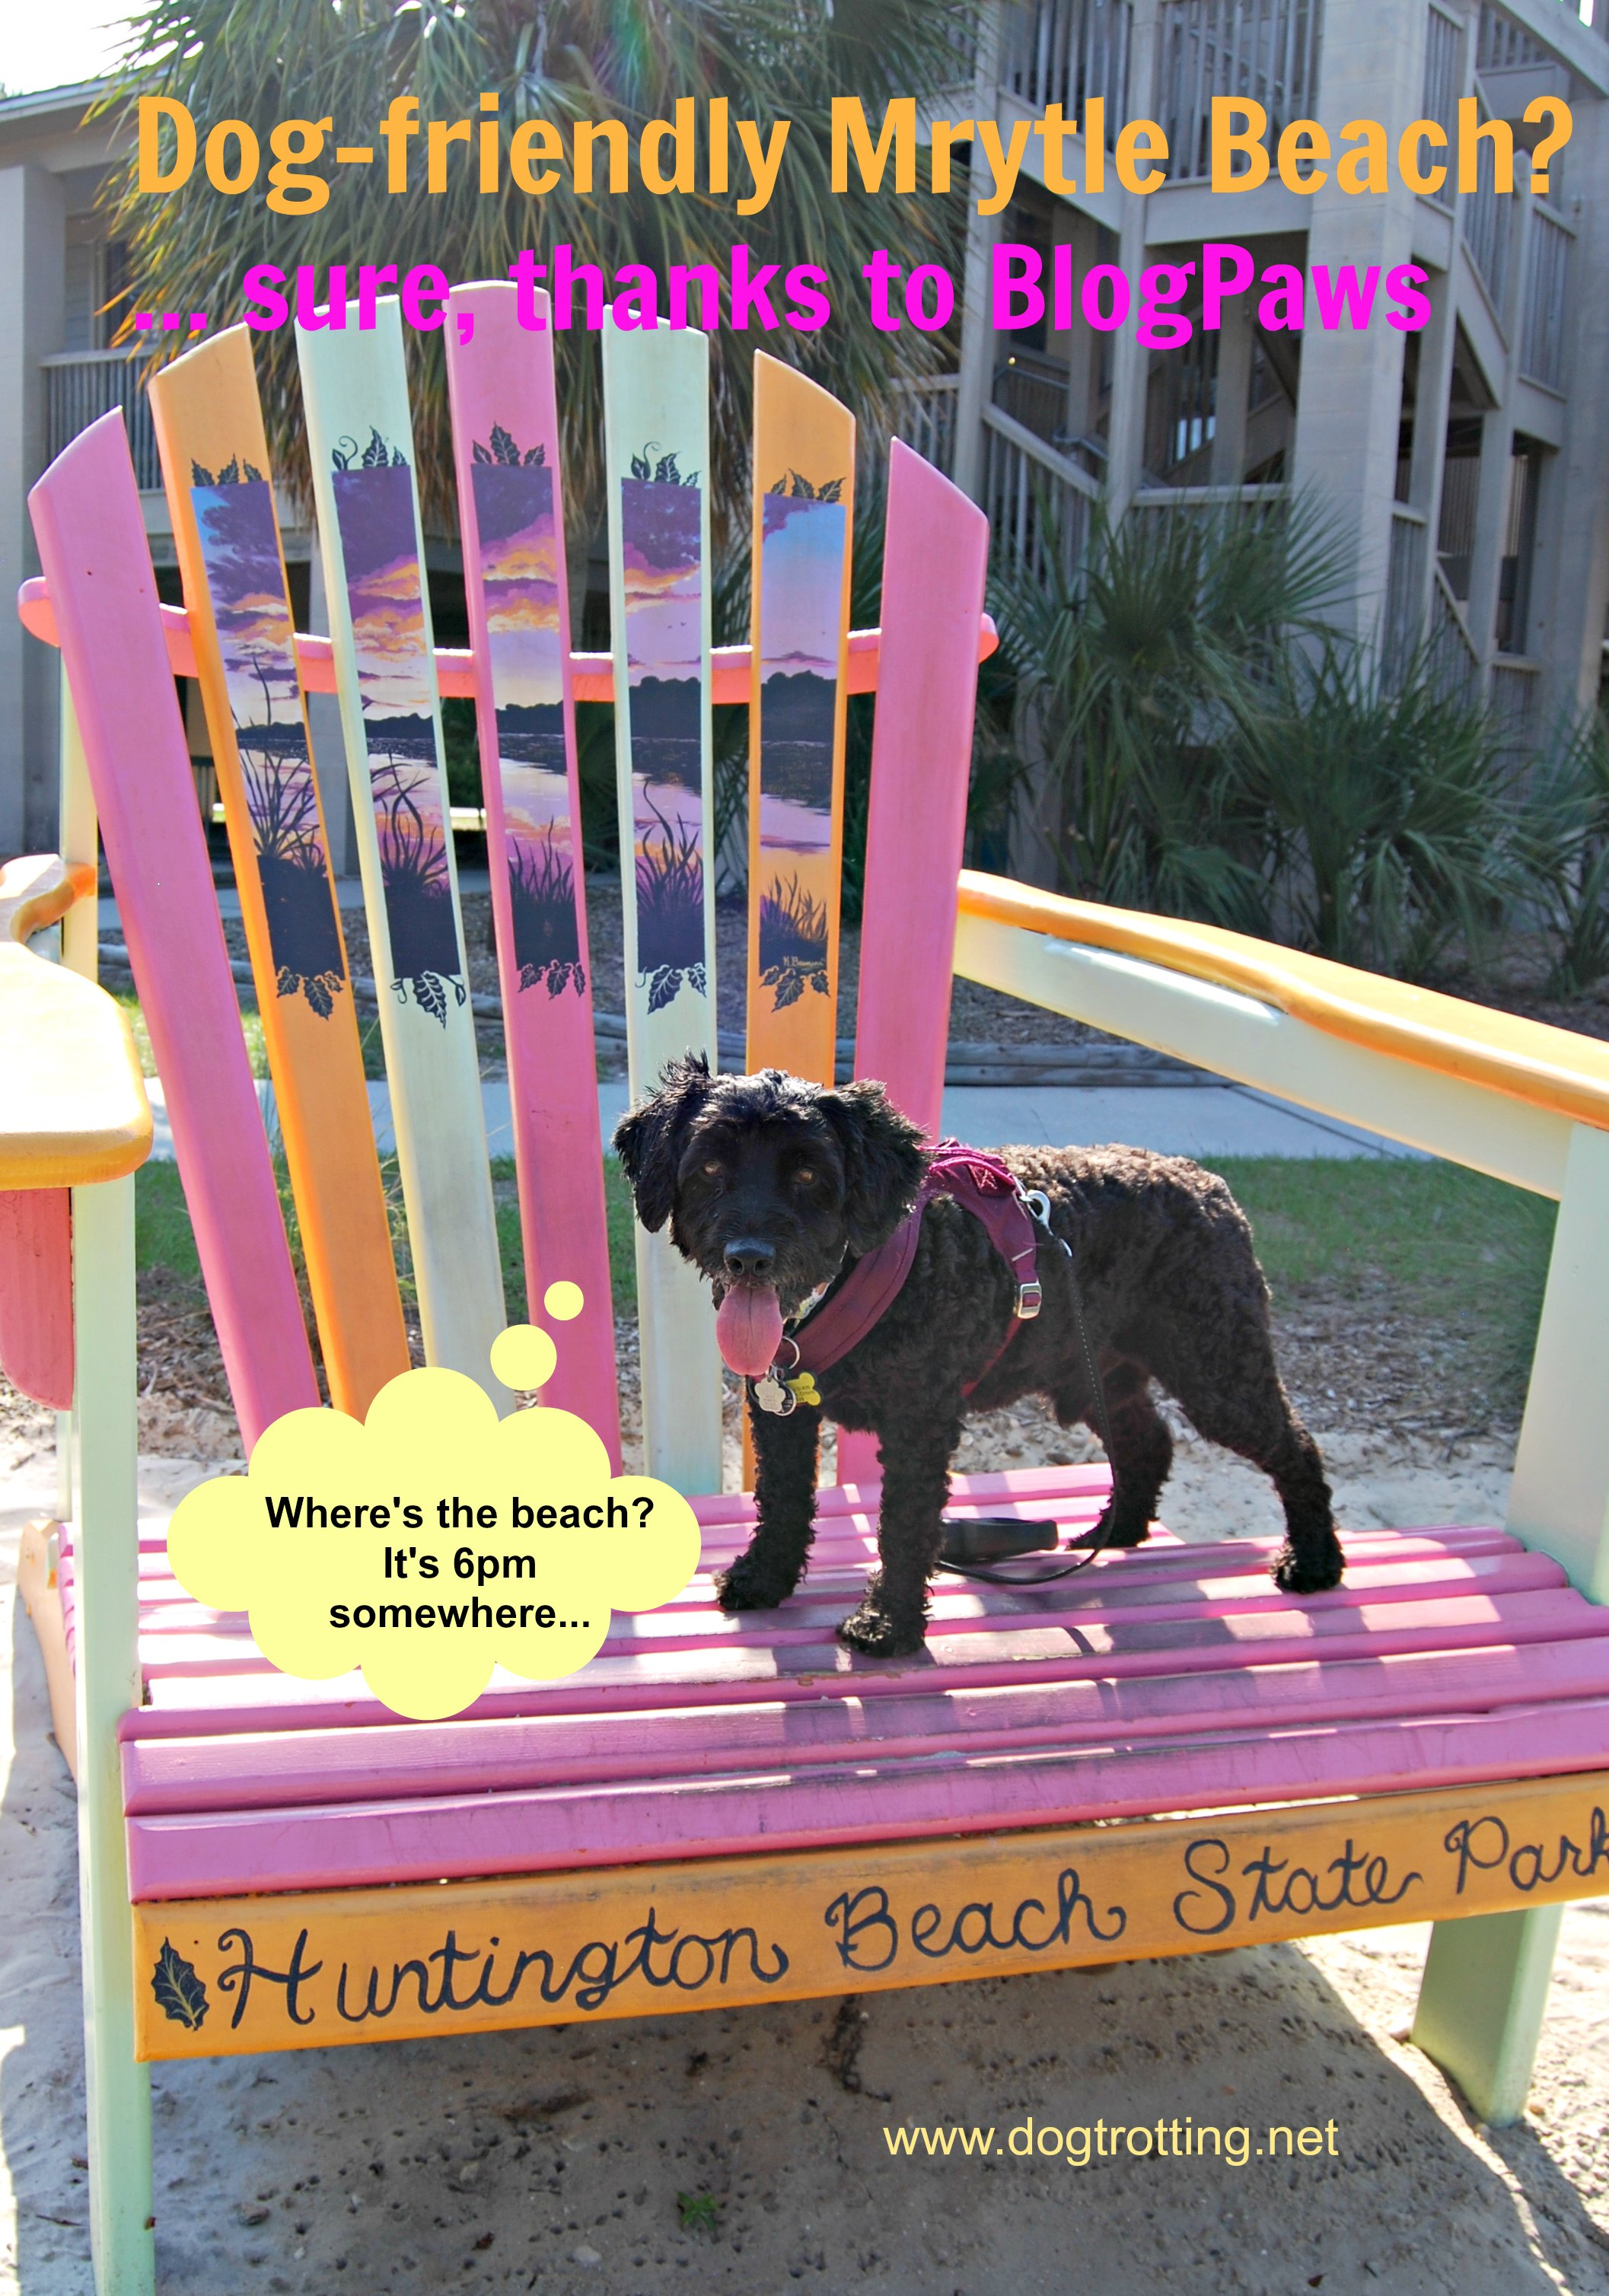 Travel Myrtle Beach, SC: Taking the dog? Here's what you need to know (and more)